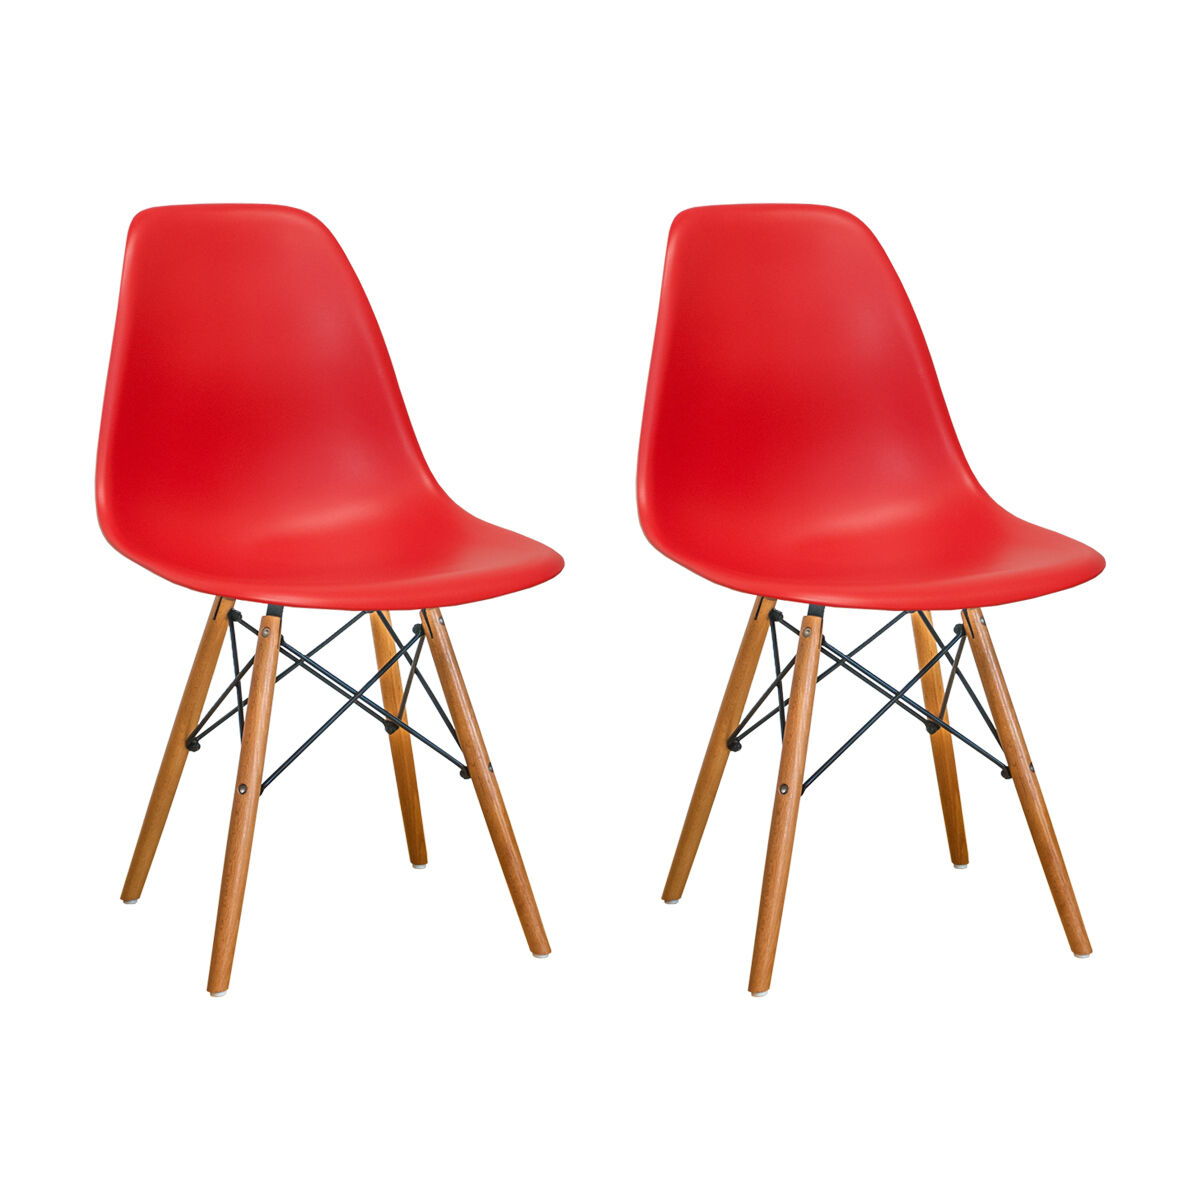 Our Paris Tower Side Chair With Wood Legs And Red Seat   Set Of 2 Is